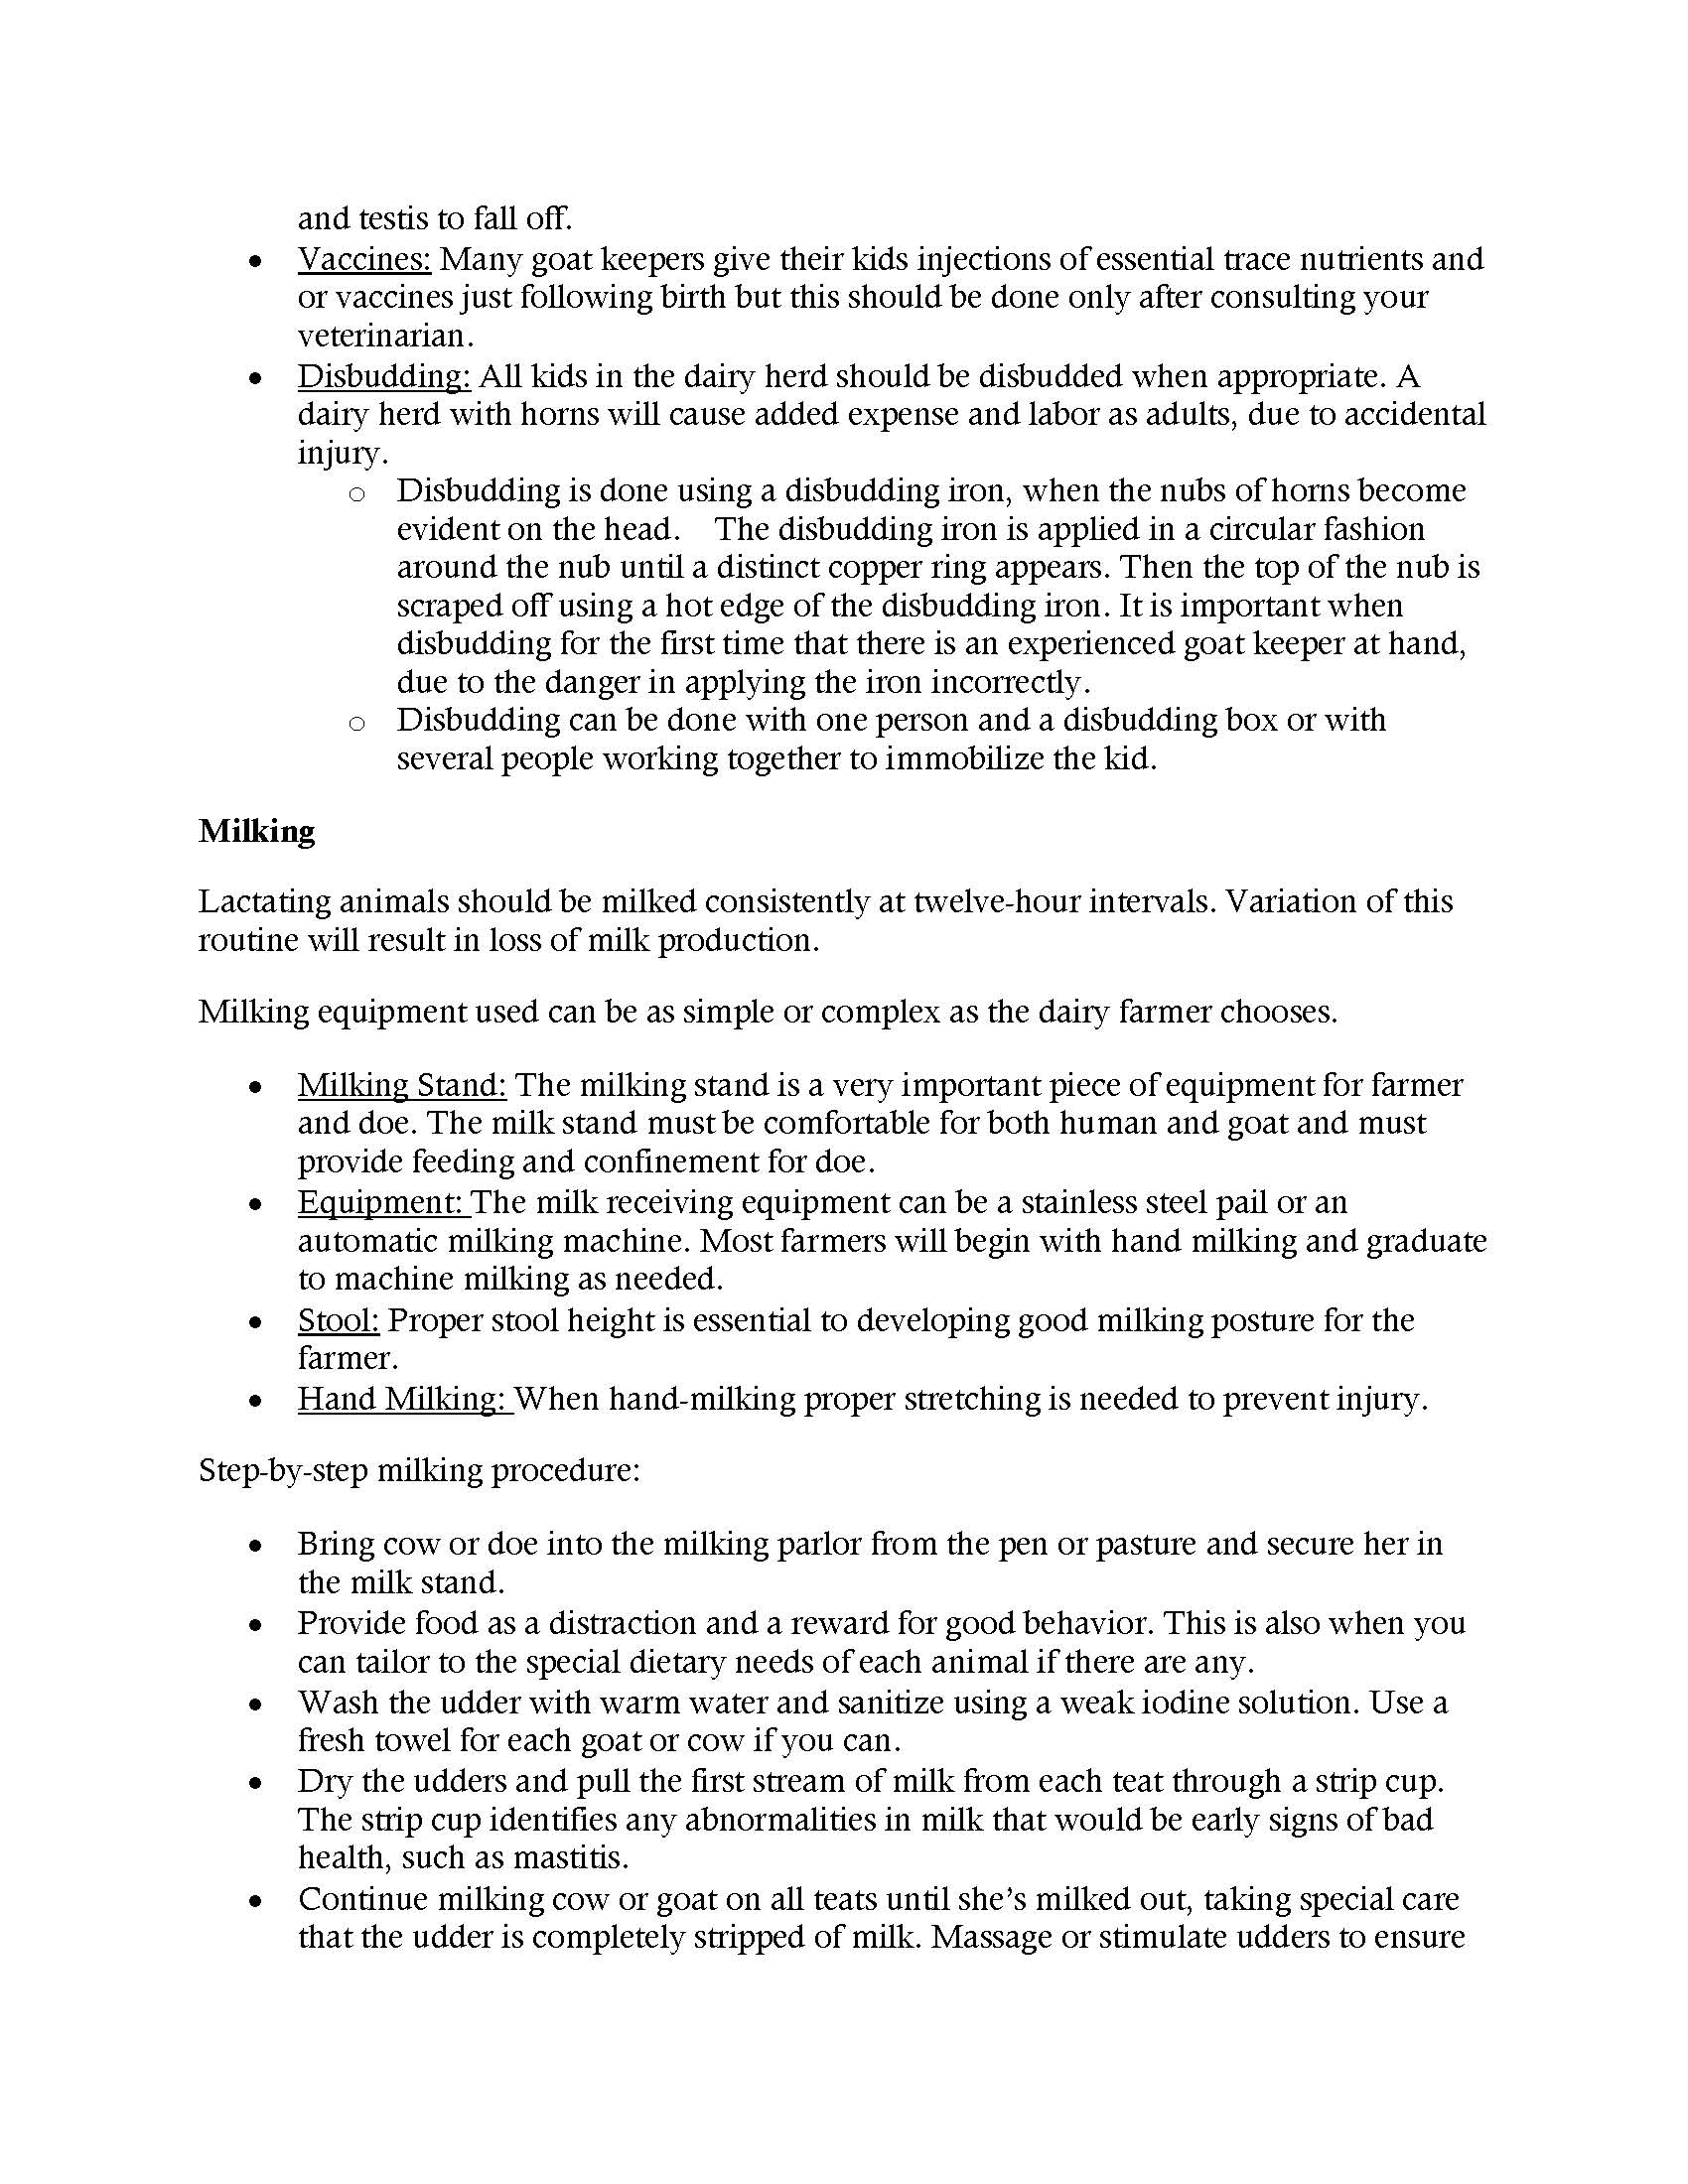 RFC Class Outlines_Page_05.jpg